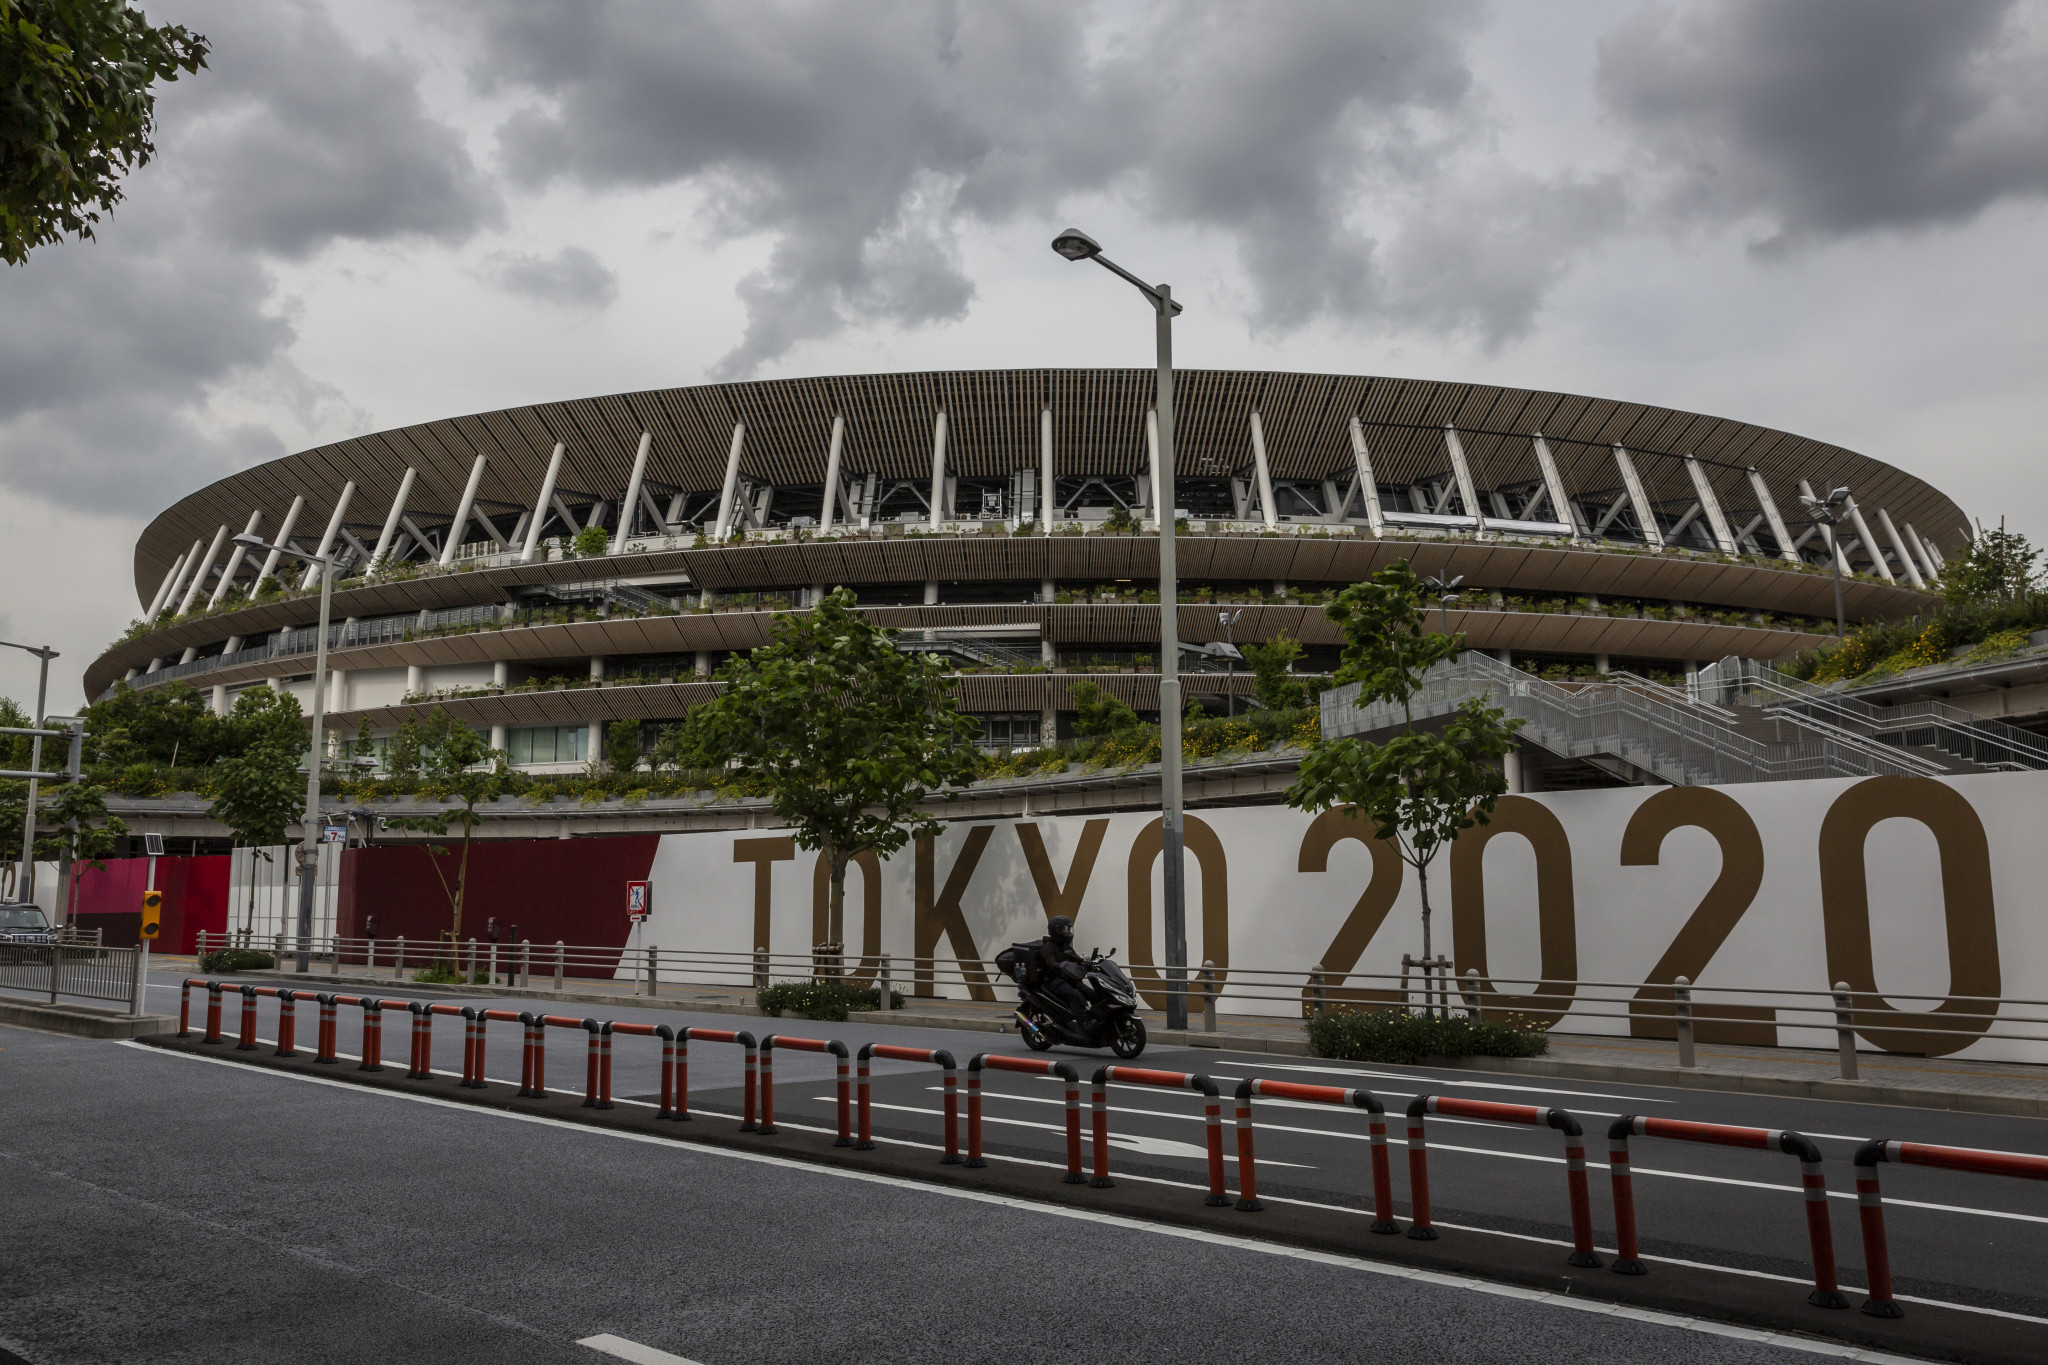 Tokyo 2020 was postponed to 2021 due to the COVID-19 pandemic ©Getty Images